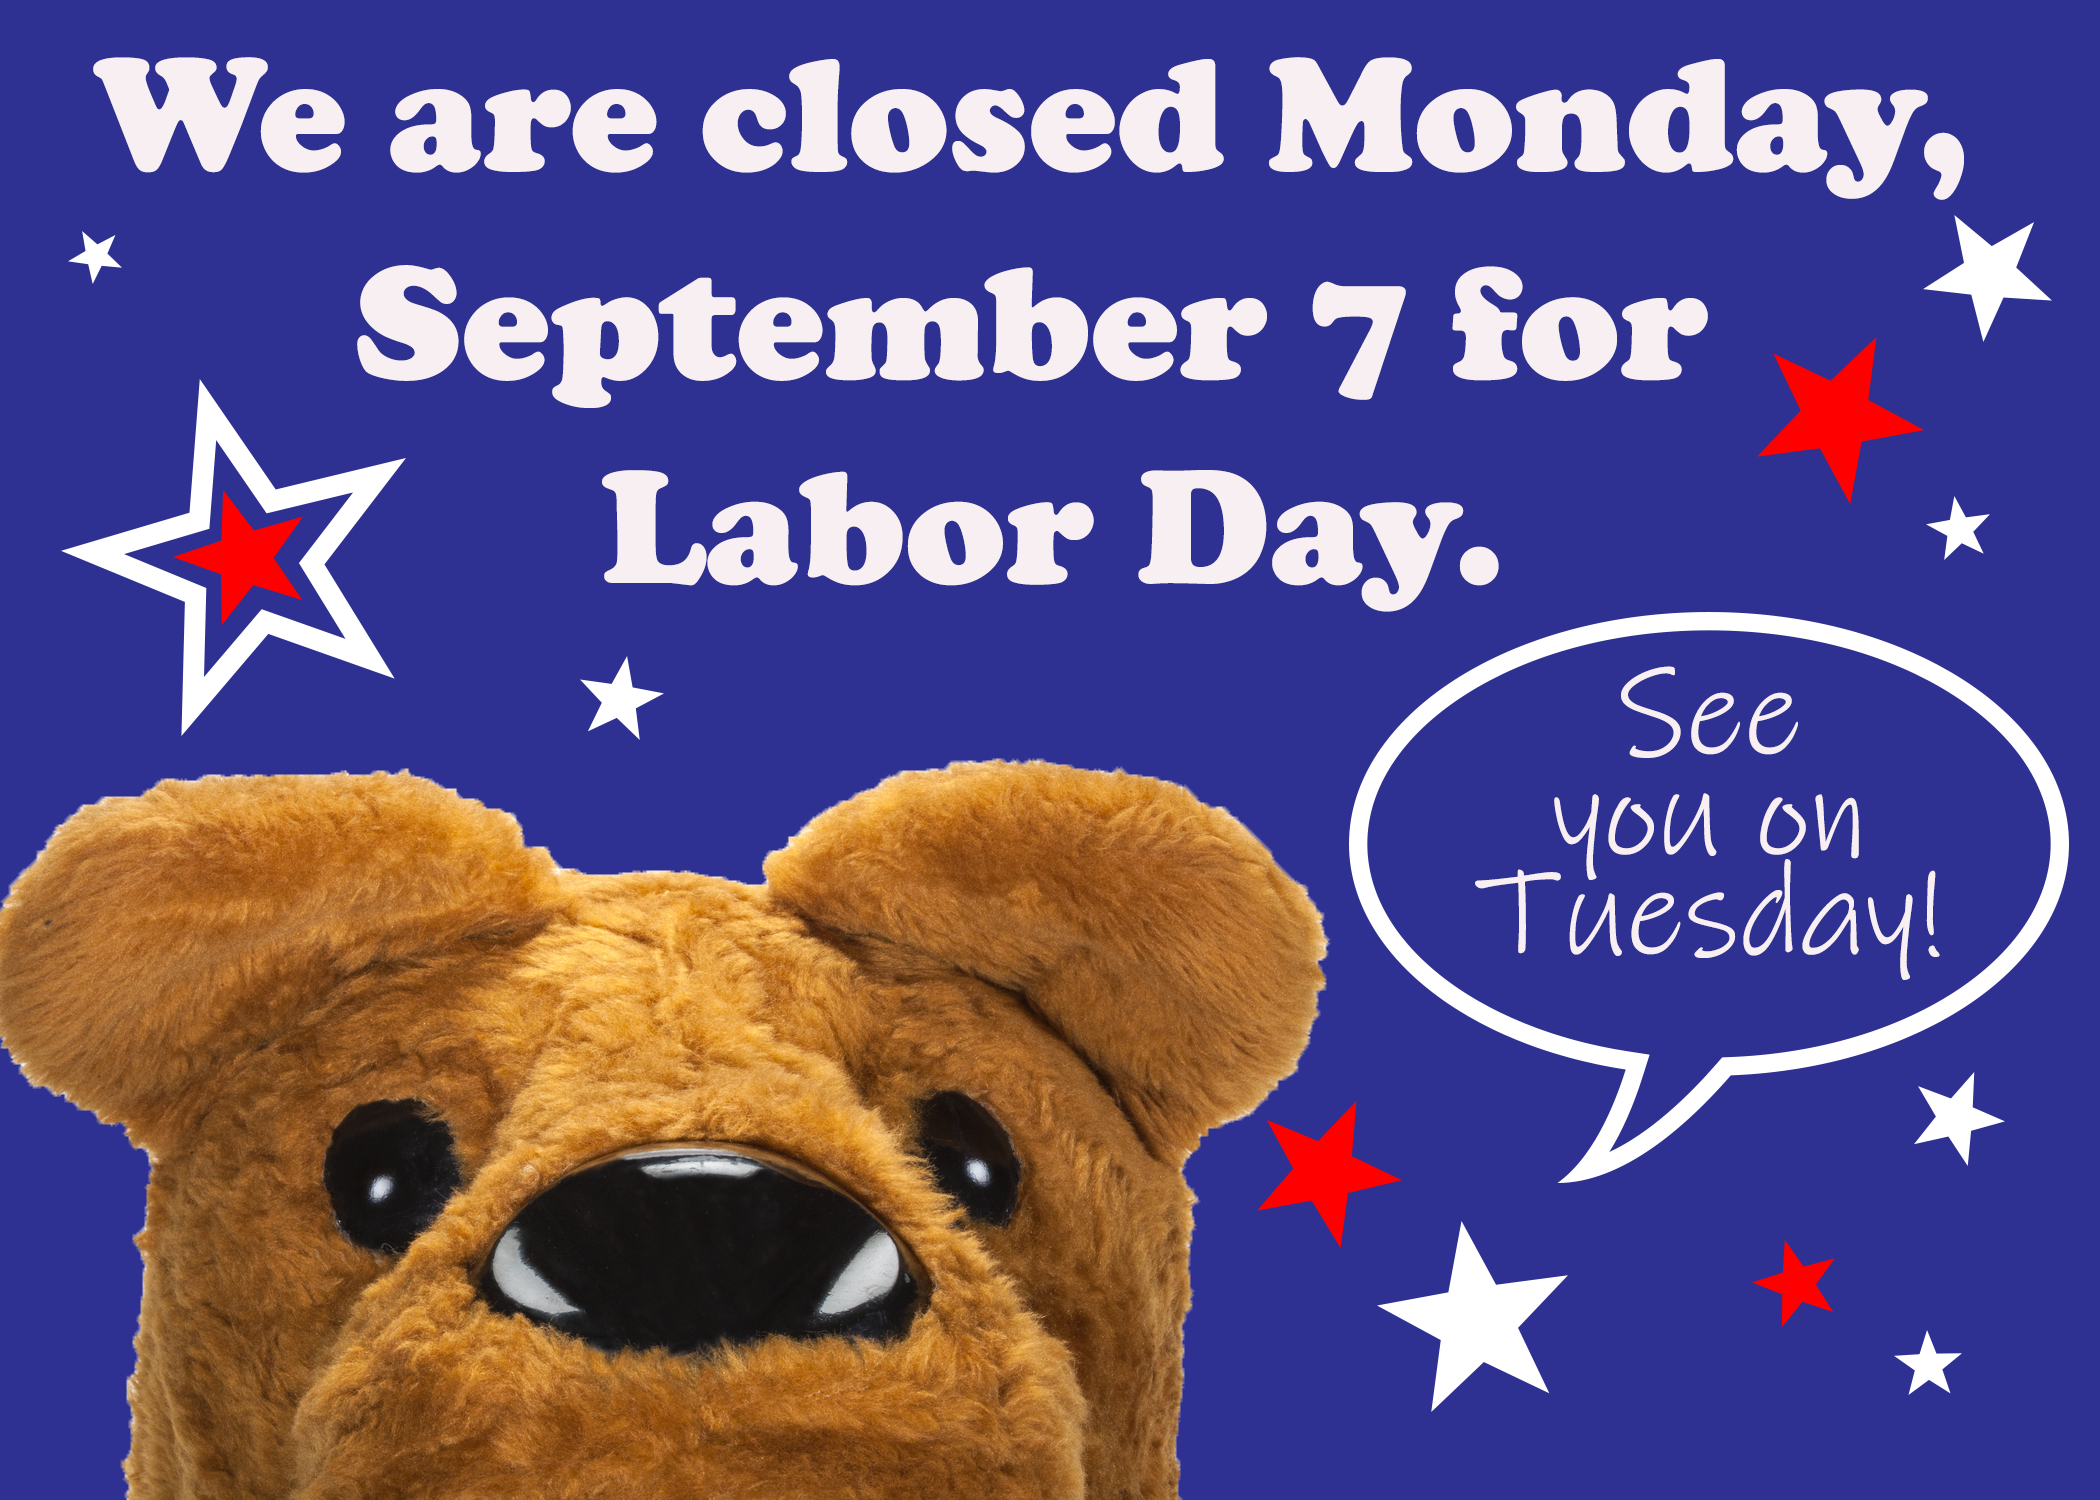 Labor Day closed message